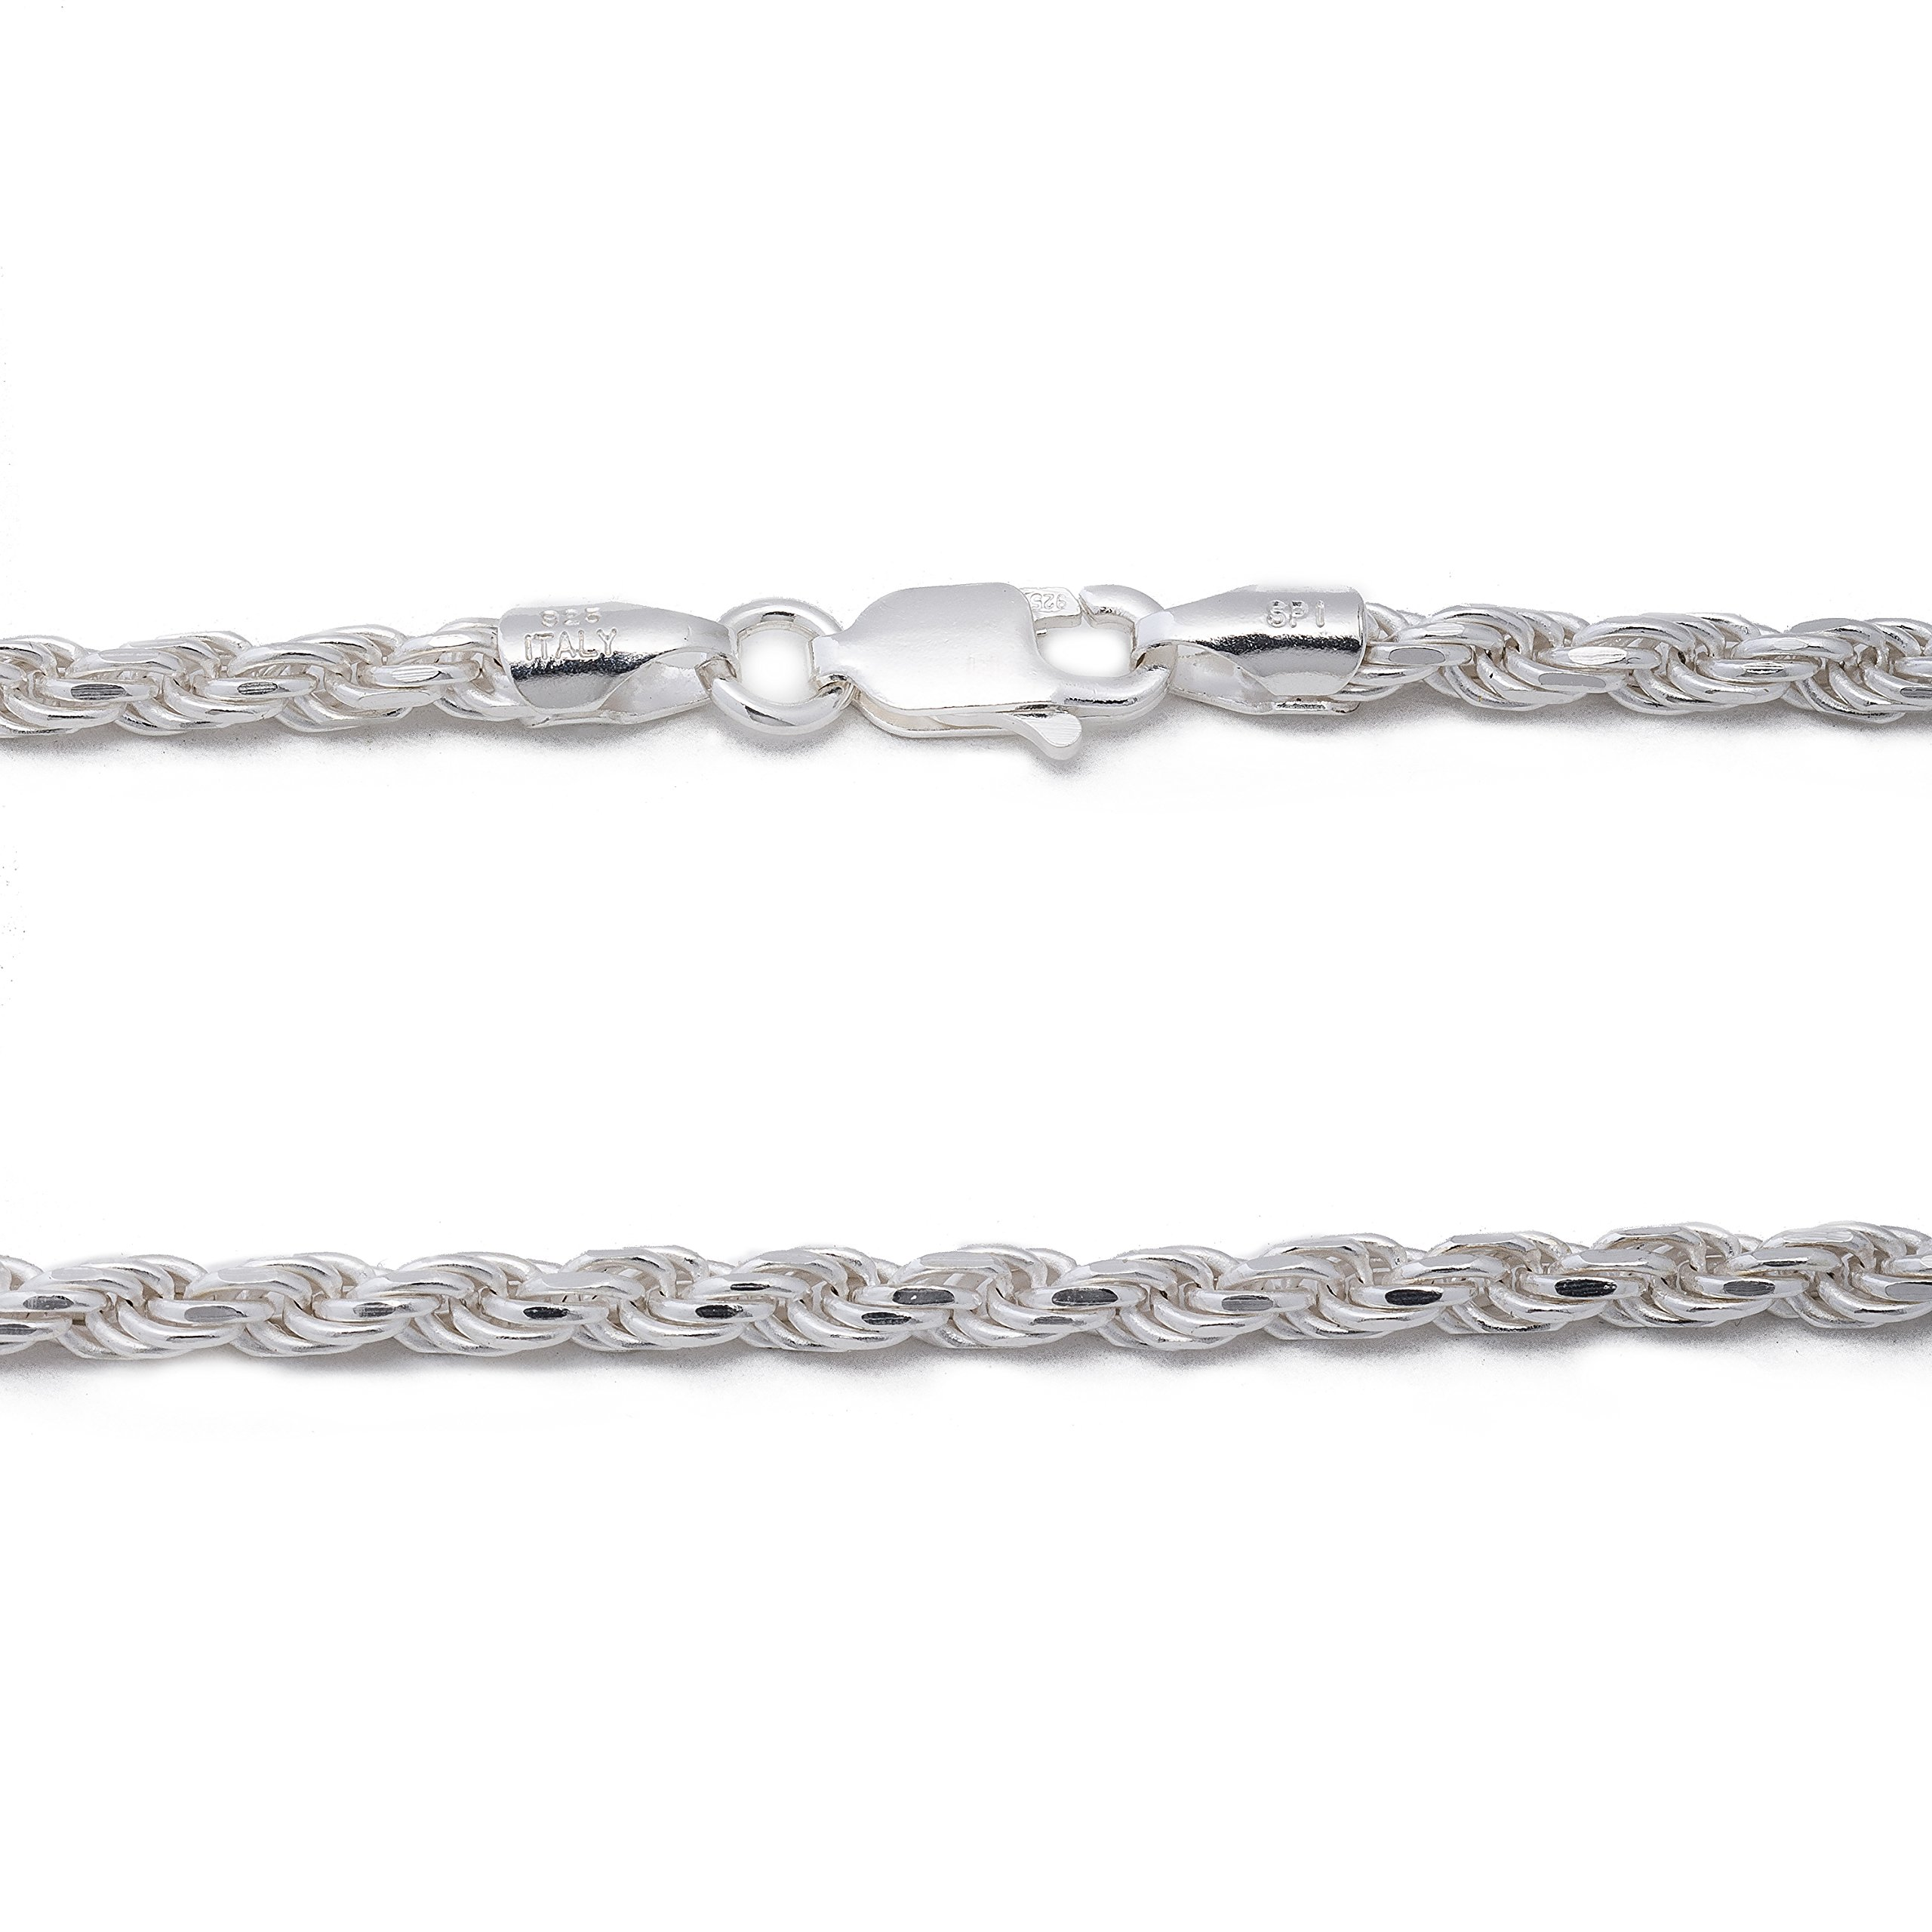 925 Sterling Silver 3MM Rope Chain Lobster Claw Clasp - 24'' by Designer Sterling Silver (Image #5)